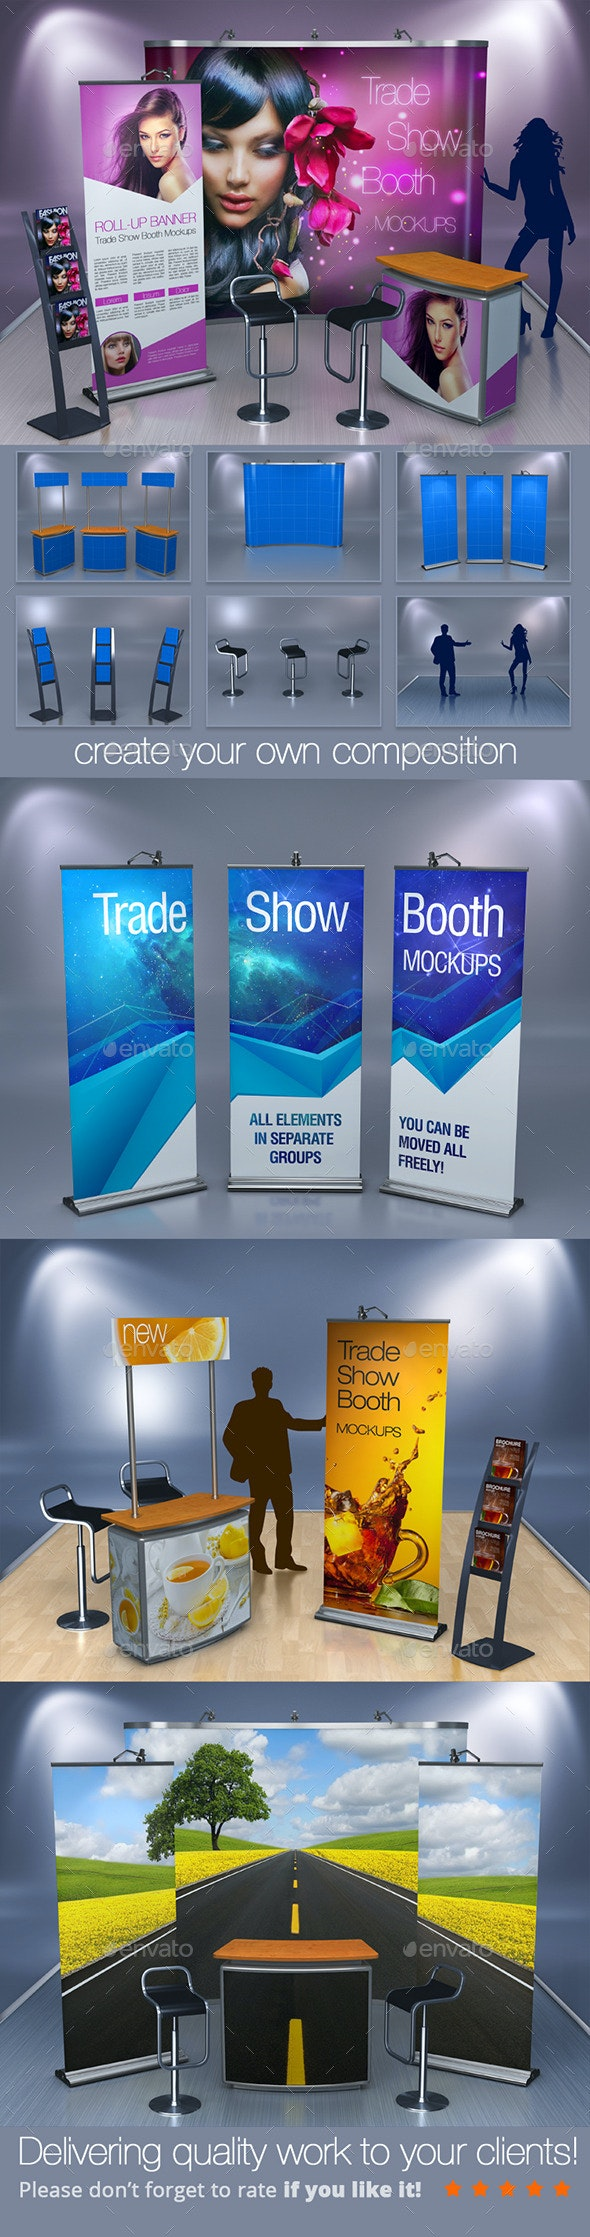 Trade Show Booth Mockups - Miscellaneous Displays